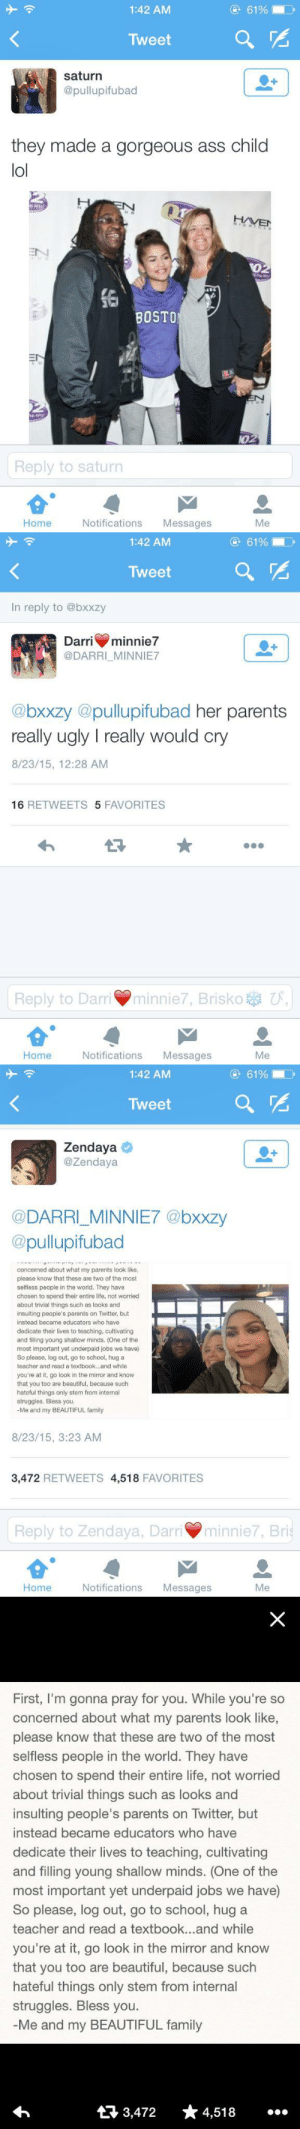 """fvckniko:  dmc-dmc:  jahmyaa:  56blogscrazy:  Some people just weren't raised right respect to zendaya  I love how she handled that. Like some celebrities have some disrespectful clap backs. Zendaya's was tasteful.  I feel the """"tasteful clapbacks"""" are the ones people absolutely can't come back from. Lol  She is the future. : O 61%  1:42 AM  Tweet  saturn  @pullupifubad  they made a gorgeous ass child  lol  HAVEN  EN  02  16  BOSTO  EN  EN  he H  Reply to saturn  Notifications  Messages  Home  Me   e 61%  1:42 AM  Tweet  In reply to @bxxzy  Darri  minnie7  @DARRI_MINNIE7  @bxxzy @pullupifubad her parents  really ugly I really would cry  8/23/15, 12:28 AM  16 RETWEETS 5 FAVORITES  minnie7, Brisko U,  Reply to Darri  Notifications  Home  Messages  Me   61%  1:42 AM  Tweet  Zendaya  @Zendaya  @DARRI_MINNIE7 @bxxzy  @pullupifubad  concerned about what my parents look like,  please know that these are two of the most  selfless people in the world. They have  chosen to spend their entire life, not worried  trivial things such as looks and  insulting people's parents on Twitter, but  instead became educators who have  dedicate their lives to teaching, cultivating  and filling young shallow minds. (One of the  most important yet underpaid jobs we have)  So please, log out, go to school, hug a  teacher and read a textbook.and while  you're at it, go look in the mirror and know  that you too are beautiful, because such  hateful things only stem from internal  struggles. Bless you.  -Me and my BEAUTIFUL family  8/23/15, 3:23 AM  3,472 RETWEETS 4,518 FAVORITES  Reply to Zendaya, Darriminnie7, Bris  Notifications  Home  Messages  Me   First, I'm gonna pray for you. While you're so  concerned about what my parents look like,  please know that these are two of the most  selfless people in the world. They have  chosen to spend their entire life, not worried  about trivial things such as looks and  insulting people's parents on Twitter, but  instead became educators who have  dedicat"""